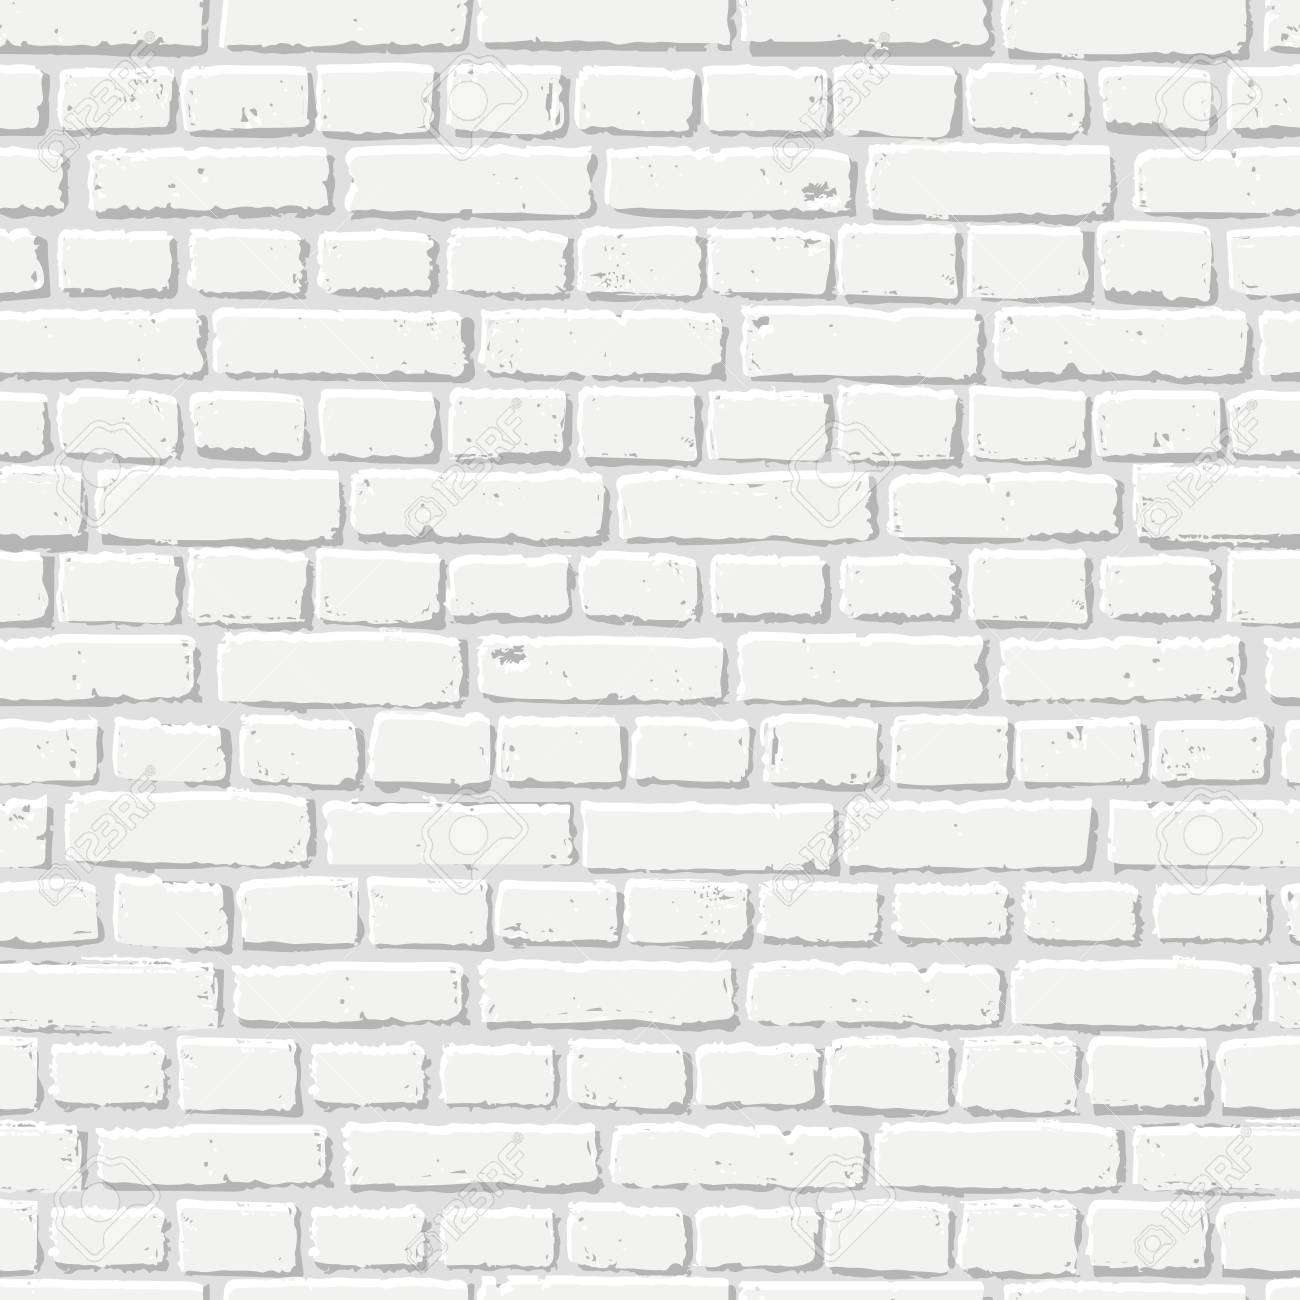 White Brick Wall Seamless Texture Abstract Architecture And Royalty Free Cliparts Vectors And Stock Illustration Image 95900447